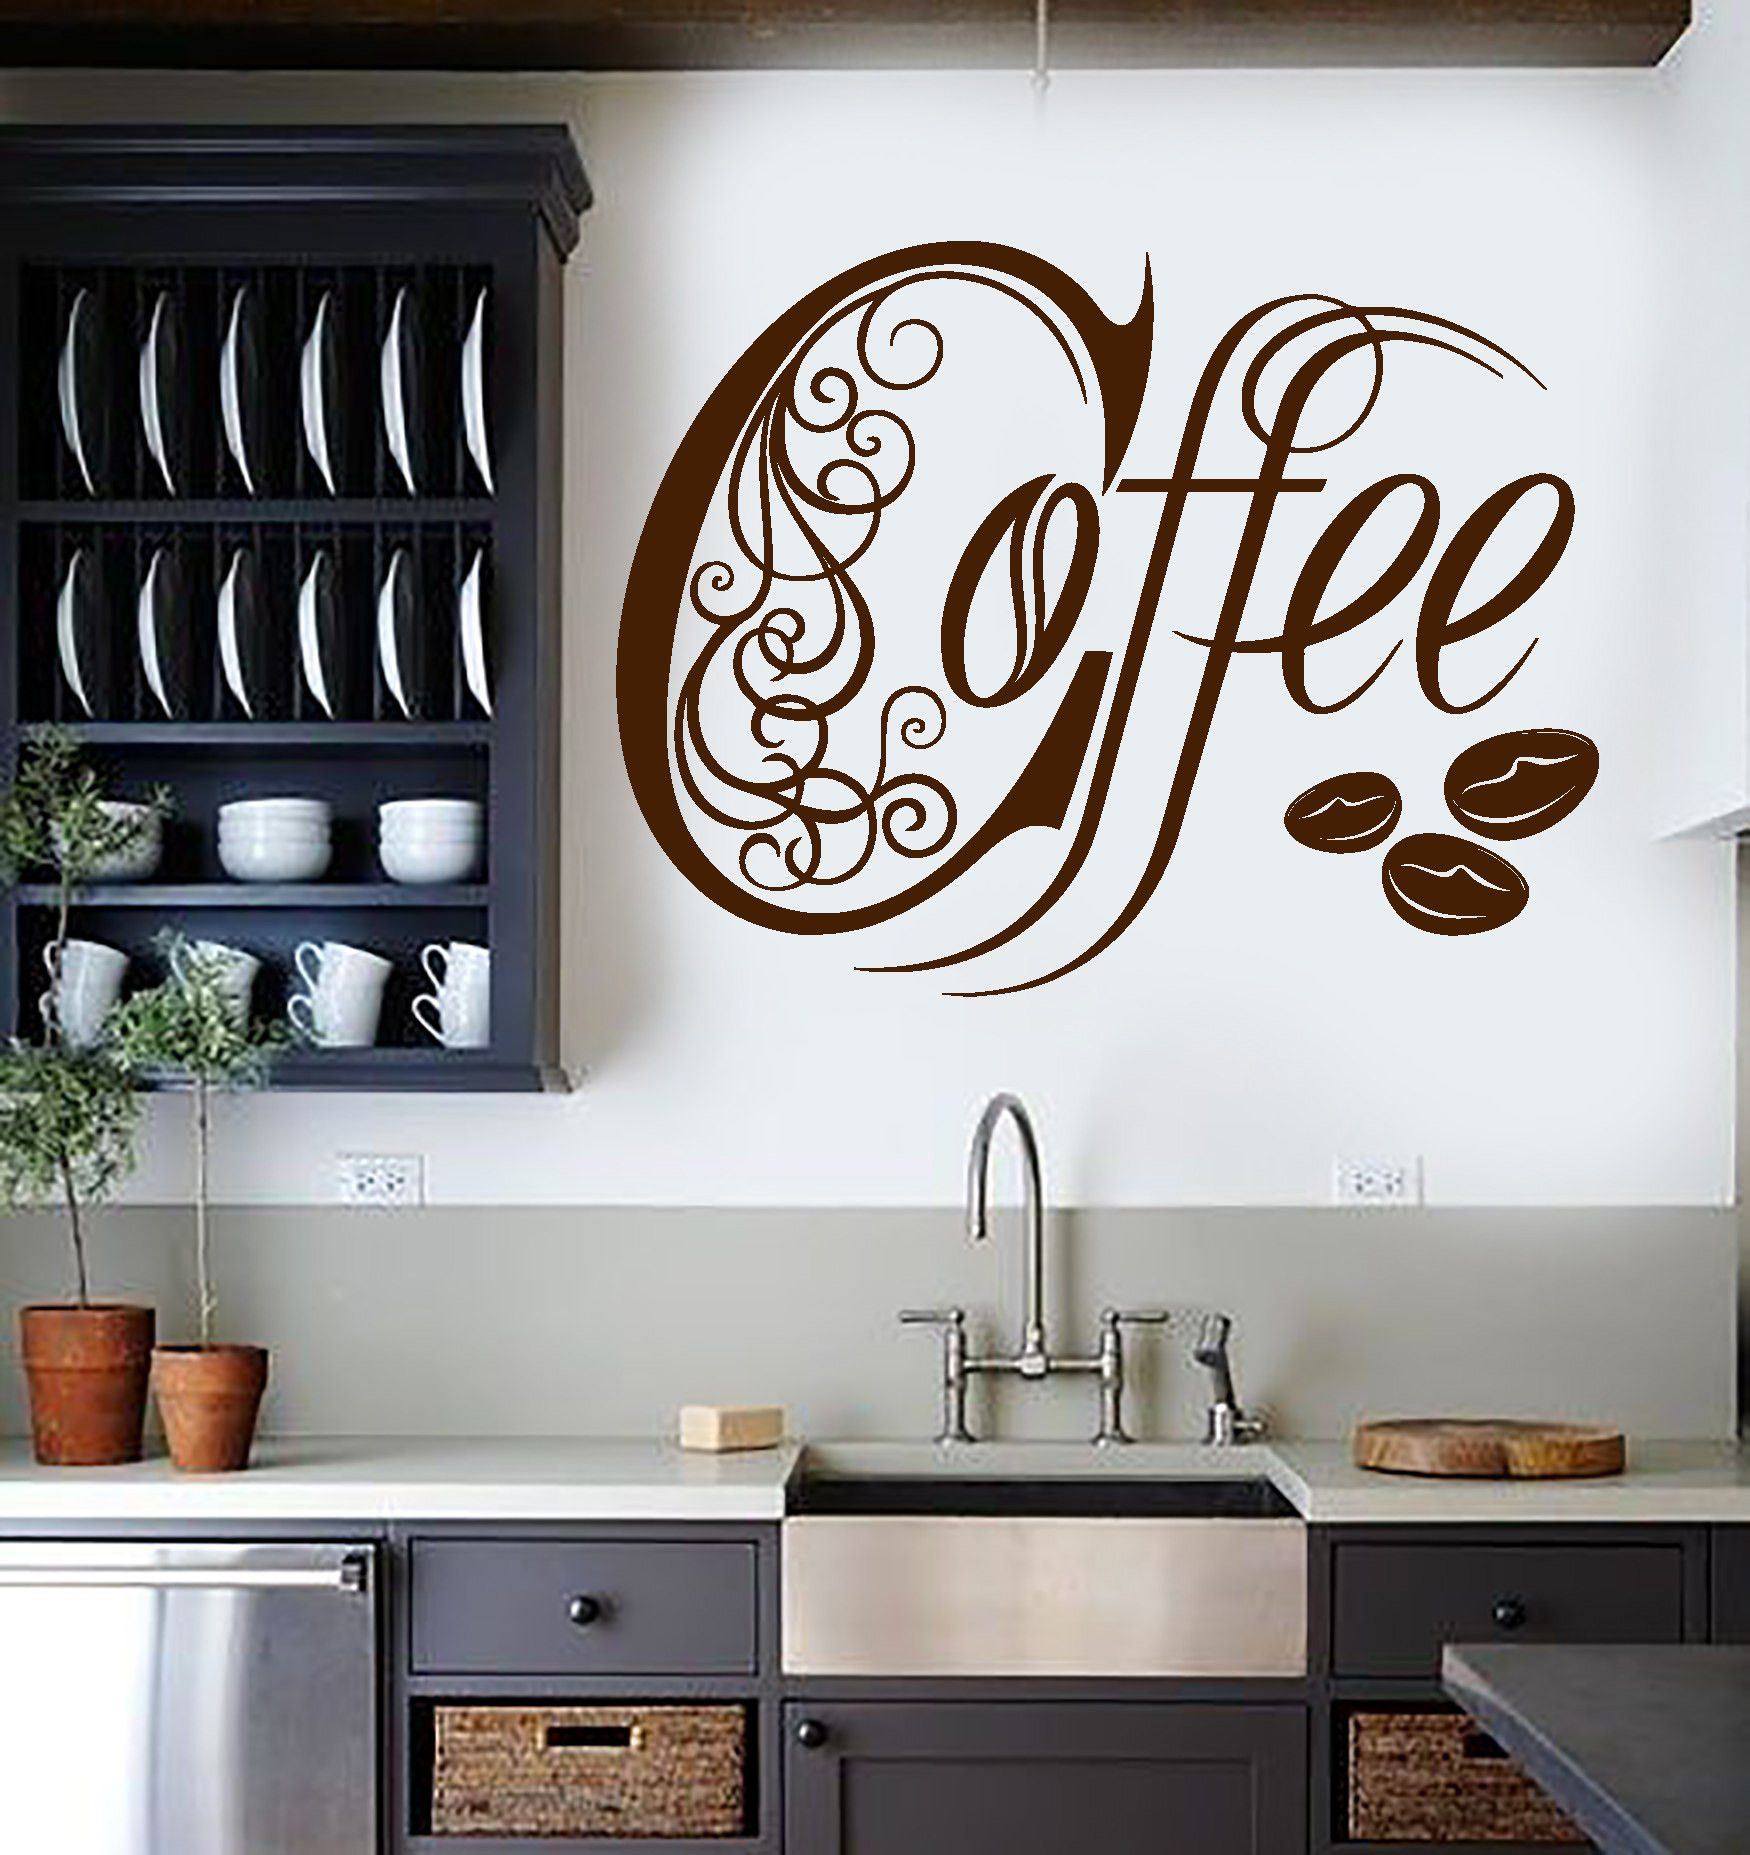 Vinyl Wall Decal Kitchen Coffee Shop House Cafe Decor Stickers Mural ...